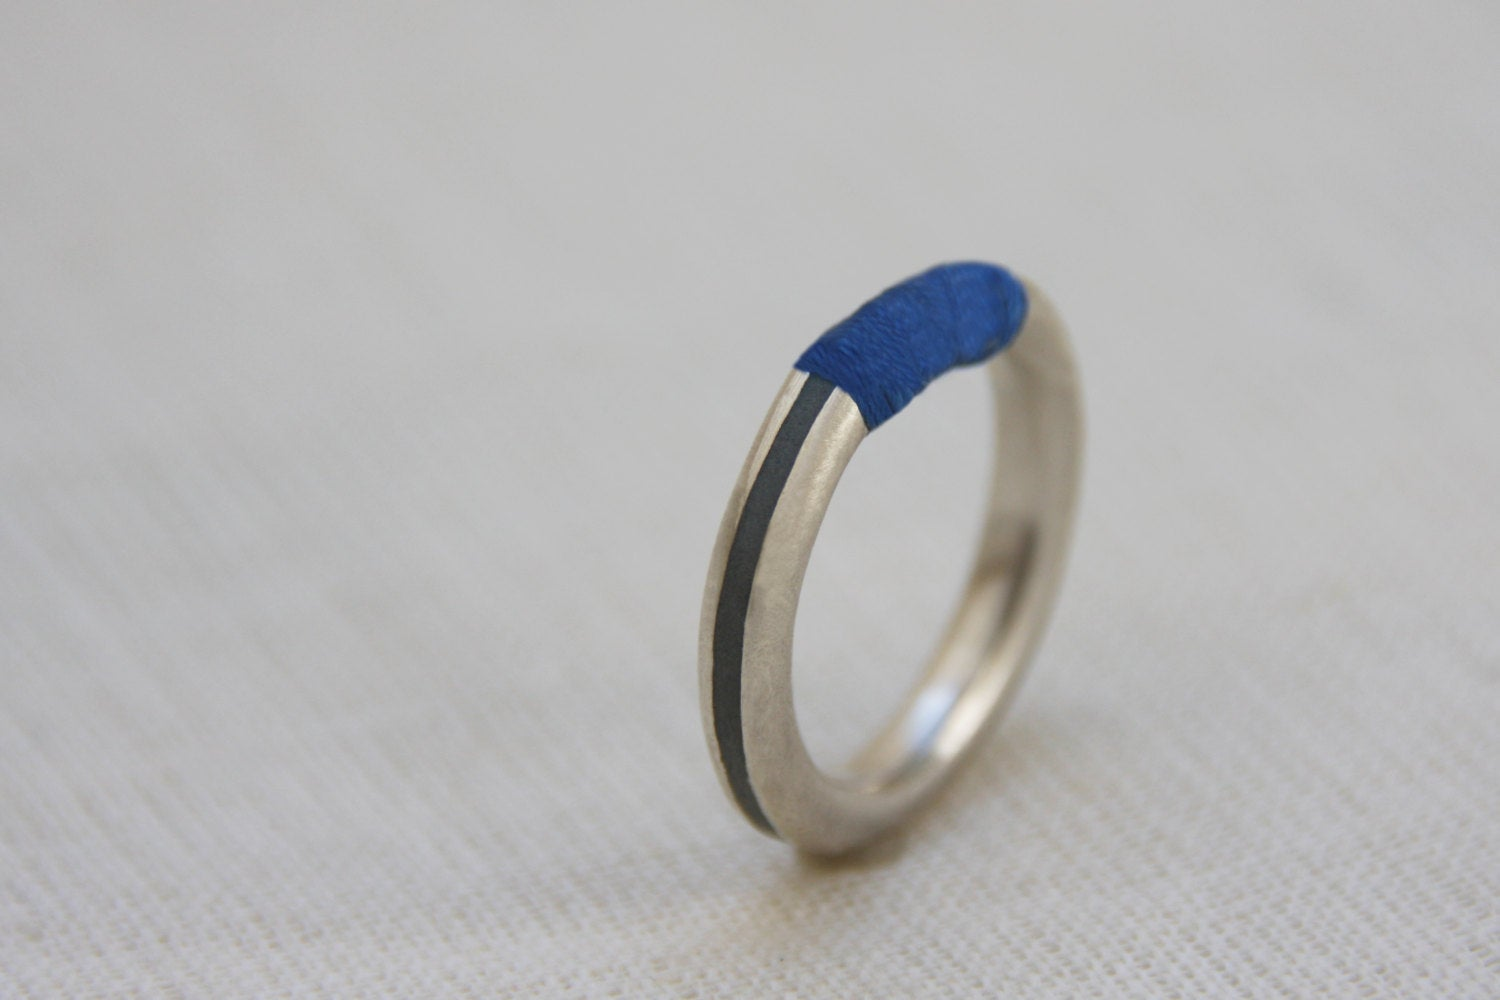 Silver concrete ring, blue threads ring, hadas shaham, Minimalist band, Contemporary ring, modern ring, stacking ring, fashion unique ring - hs